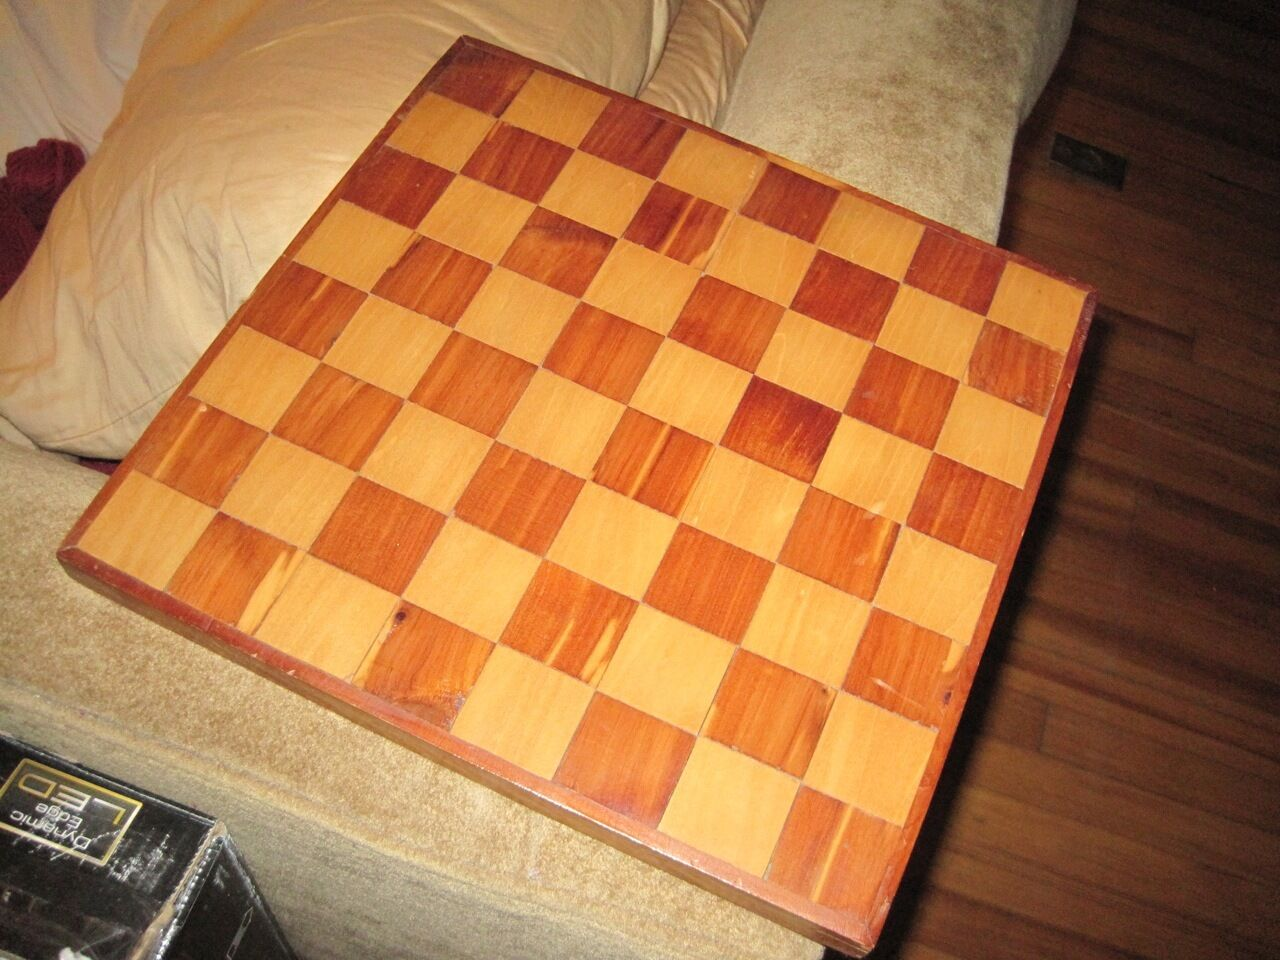 Vintage Hand Made Chess Game Board Walnut & Cherry Wood Parquetry  12-1 2 x 13